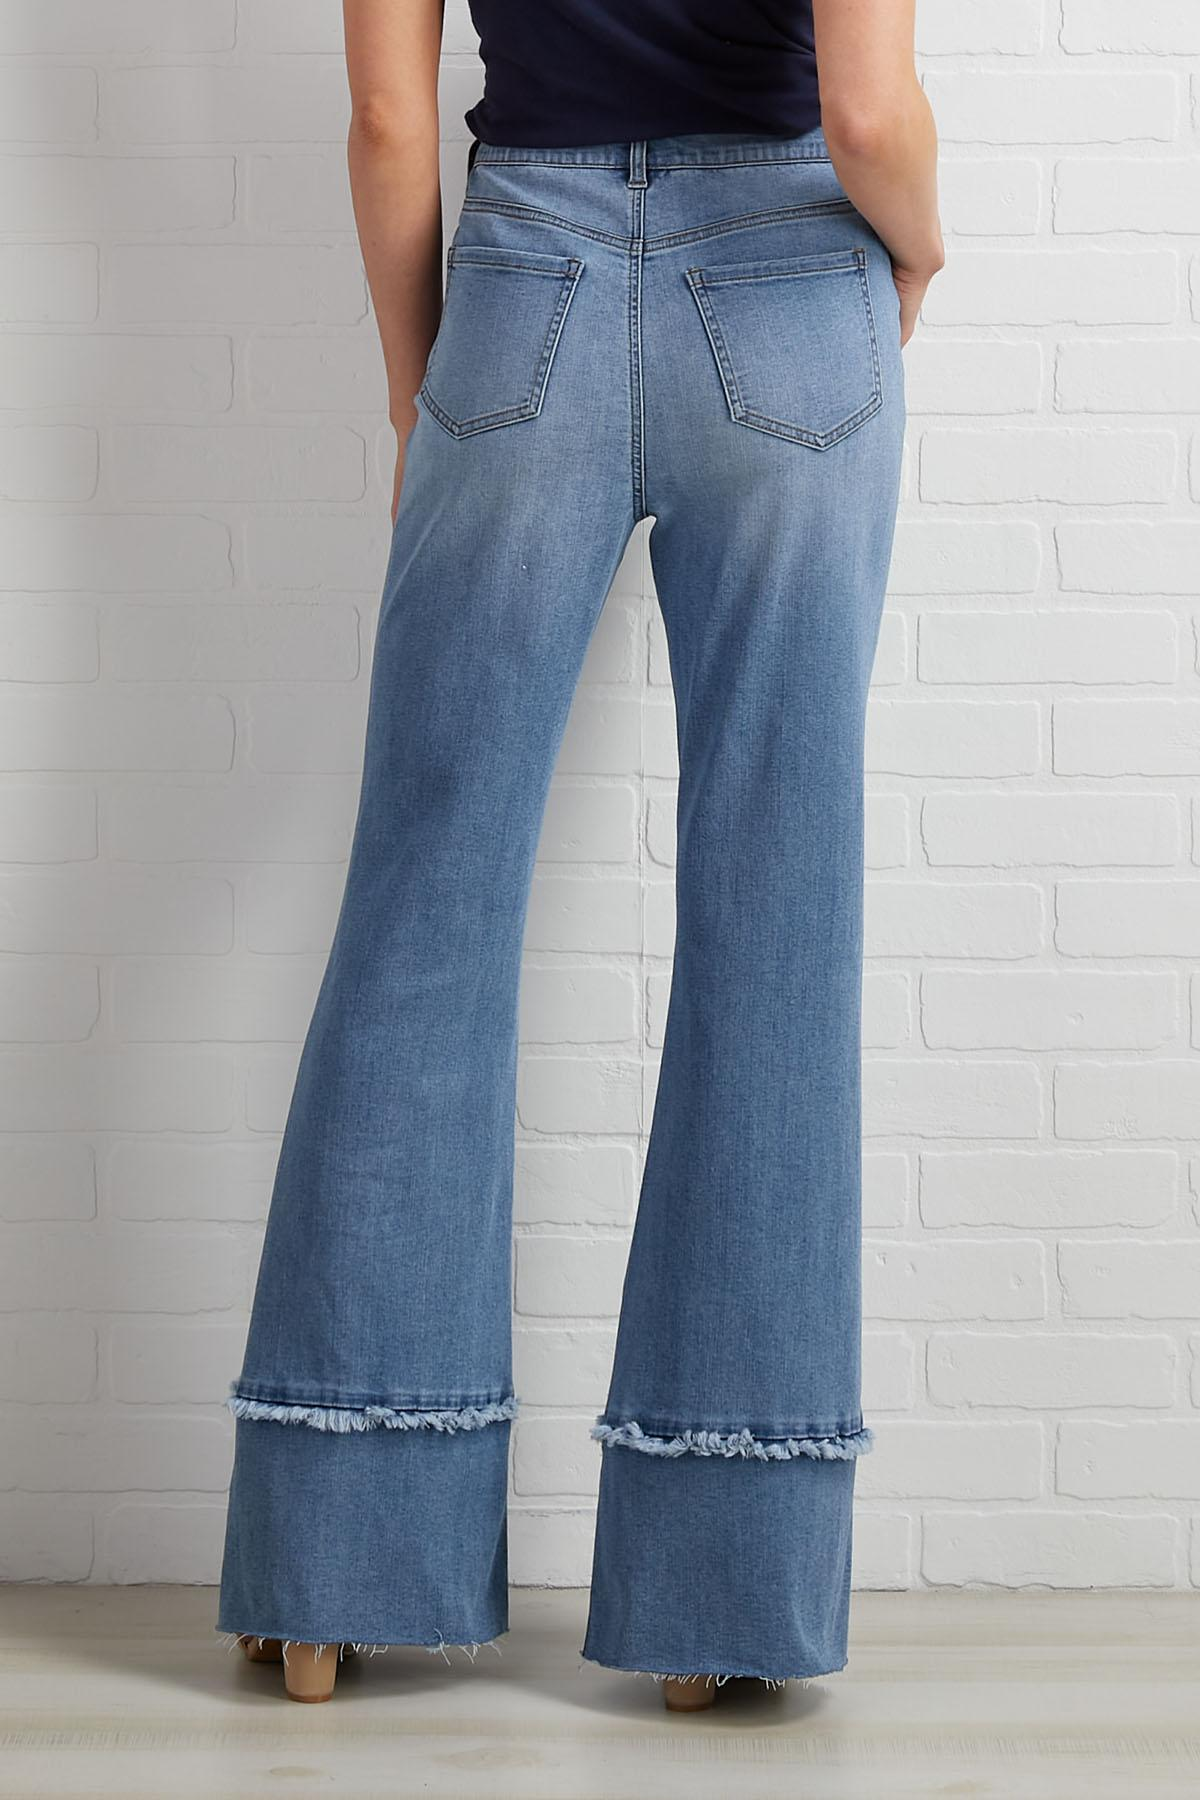 In The Groove Jeans